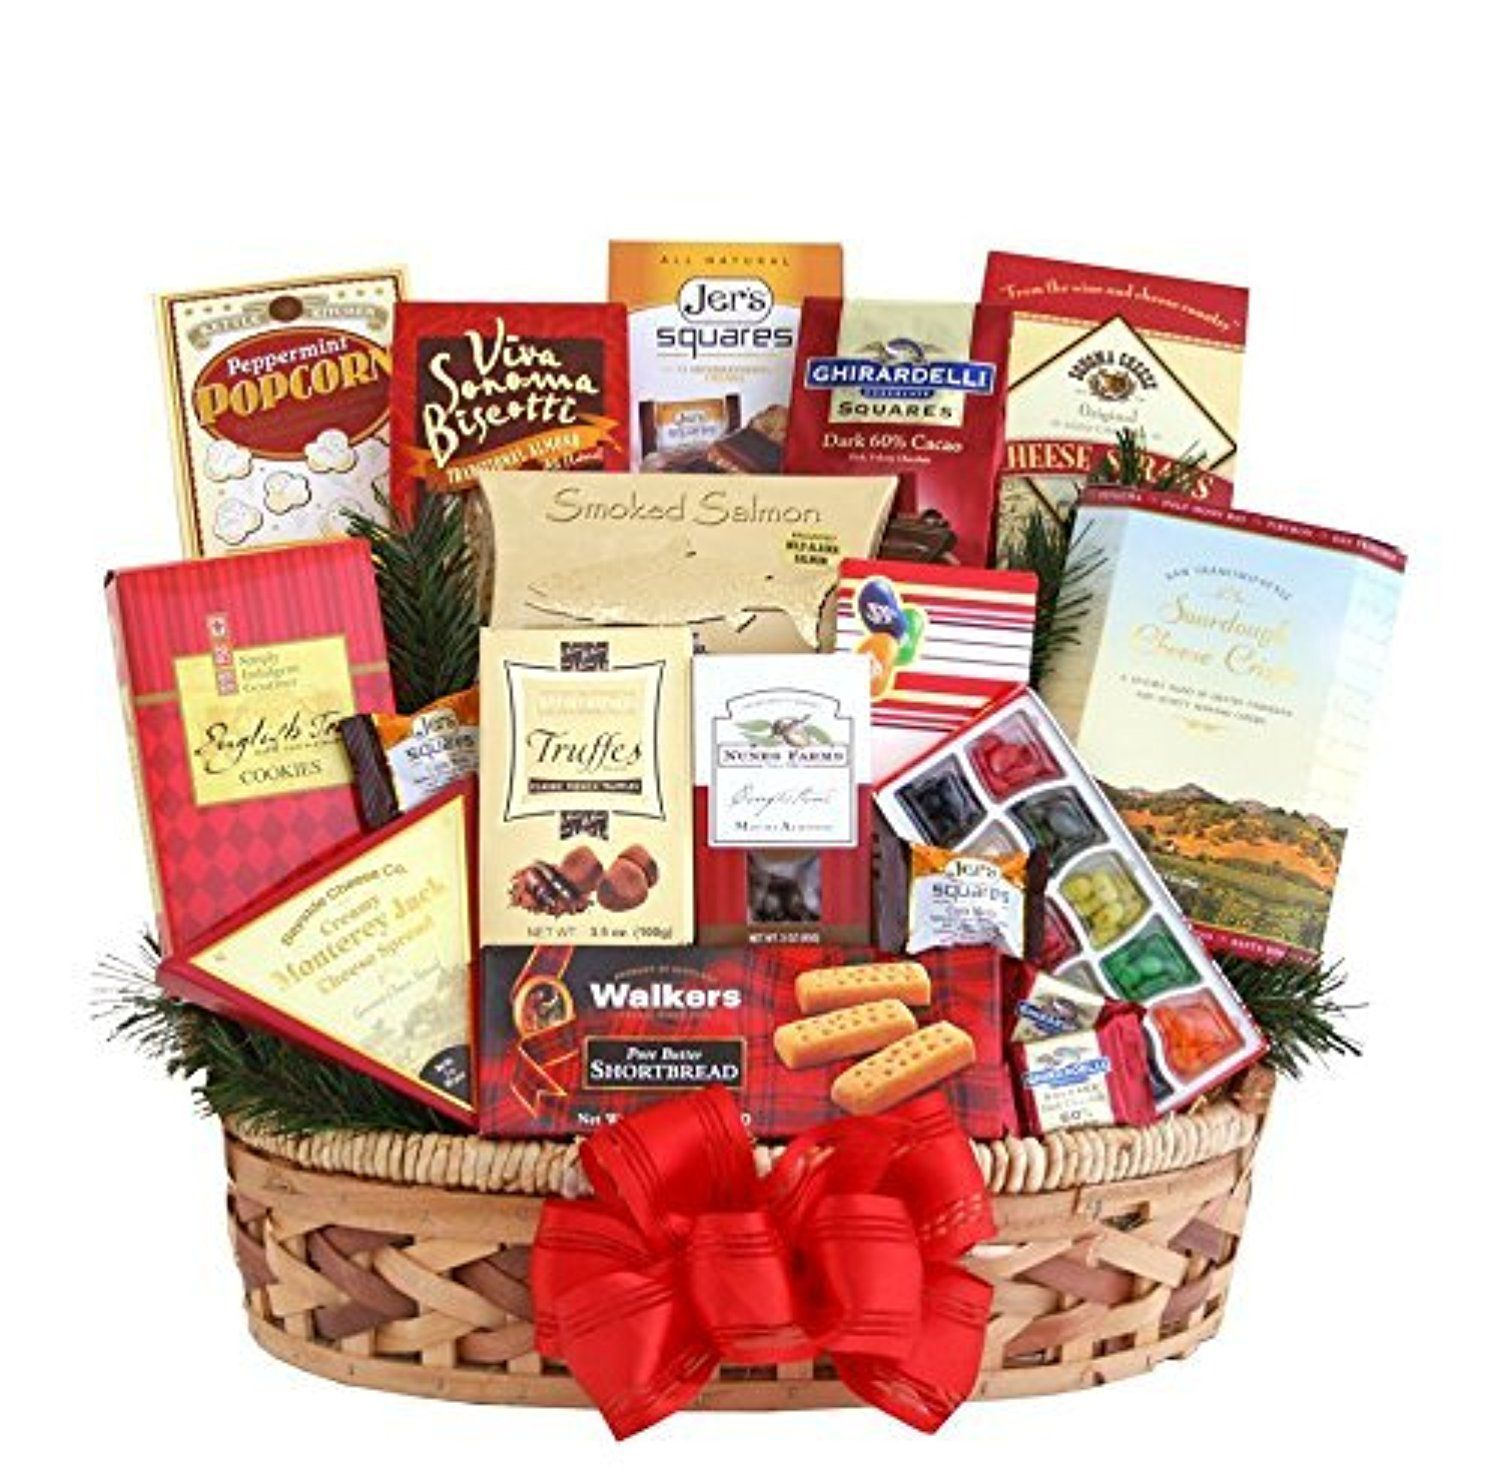 Reindeer Games Christmas Gift Basket - Smoked Salmon, Cheese, Candy,